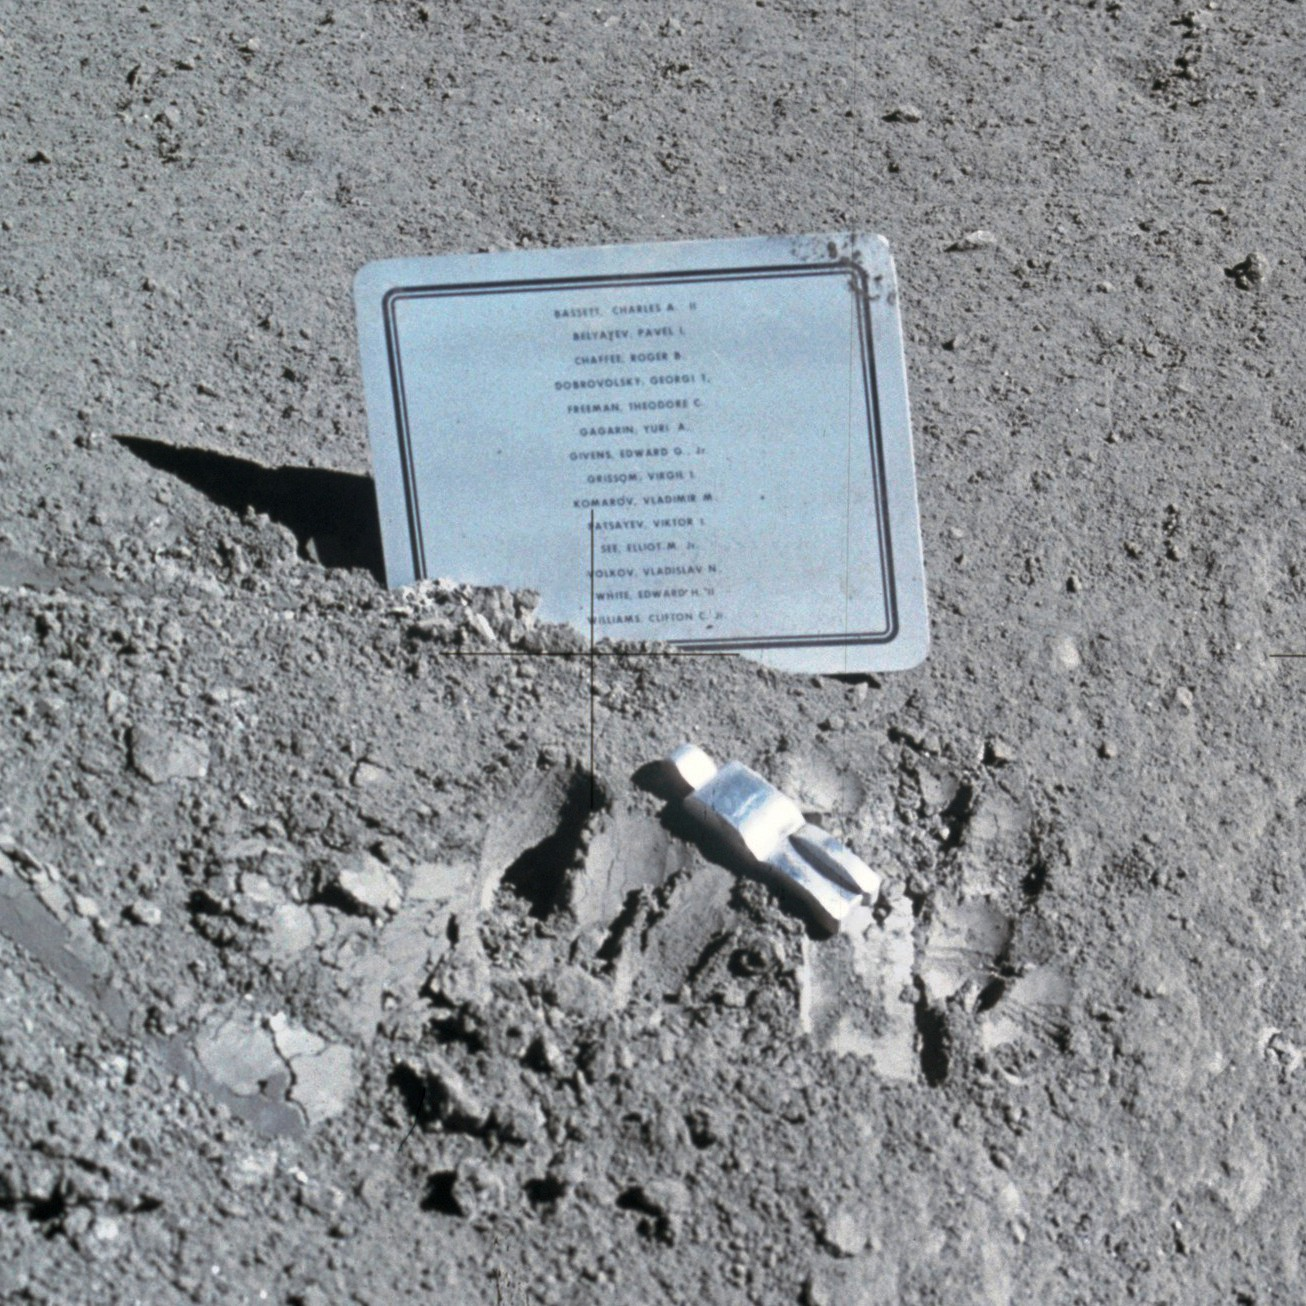 The tribute on the moon to the missing astronauts